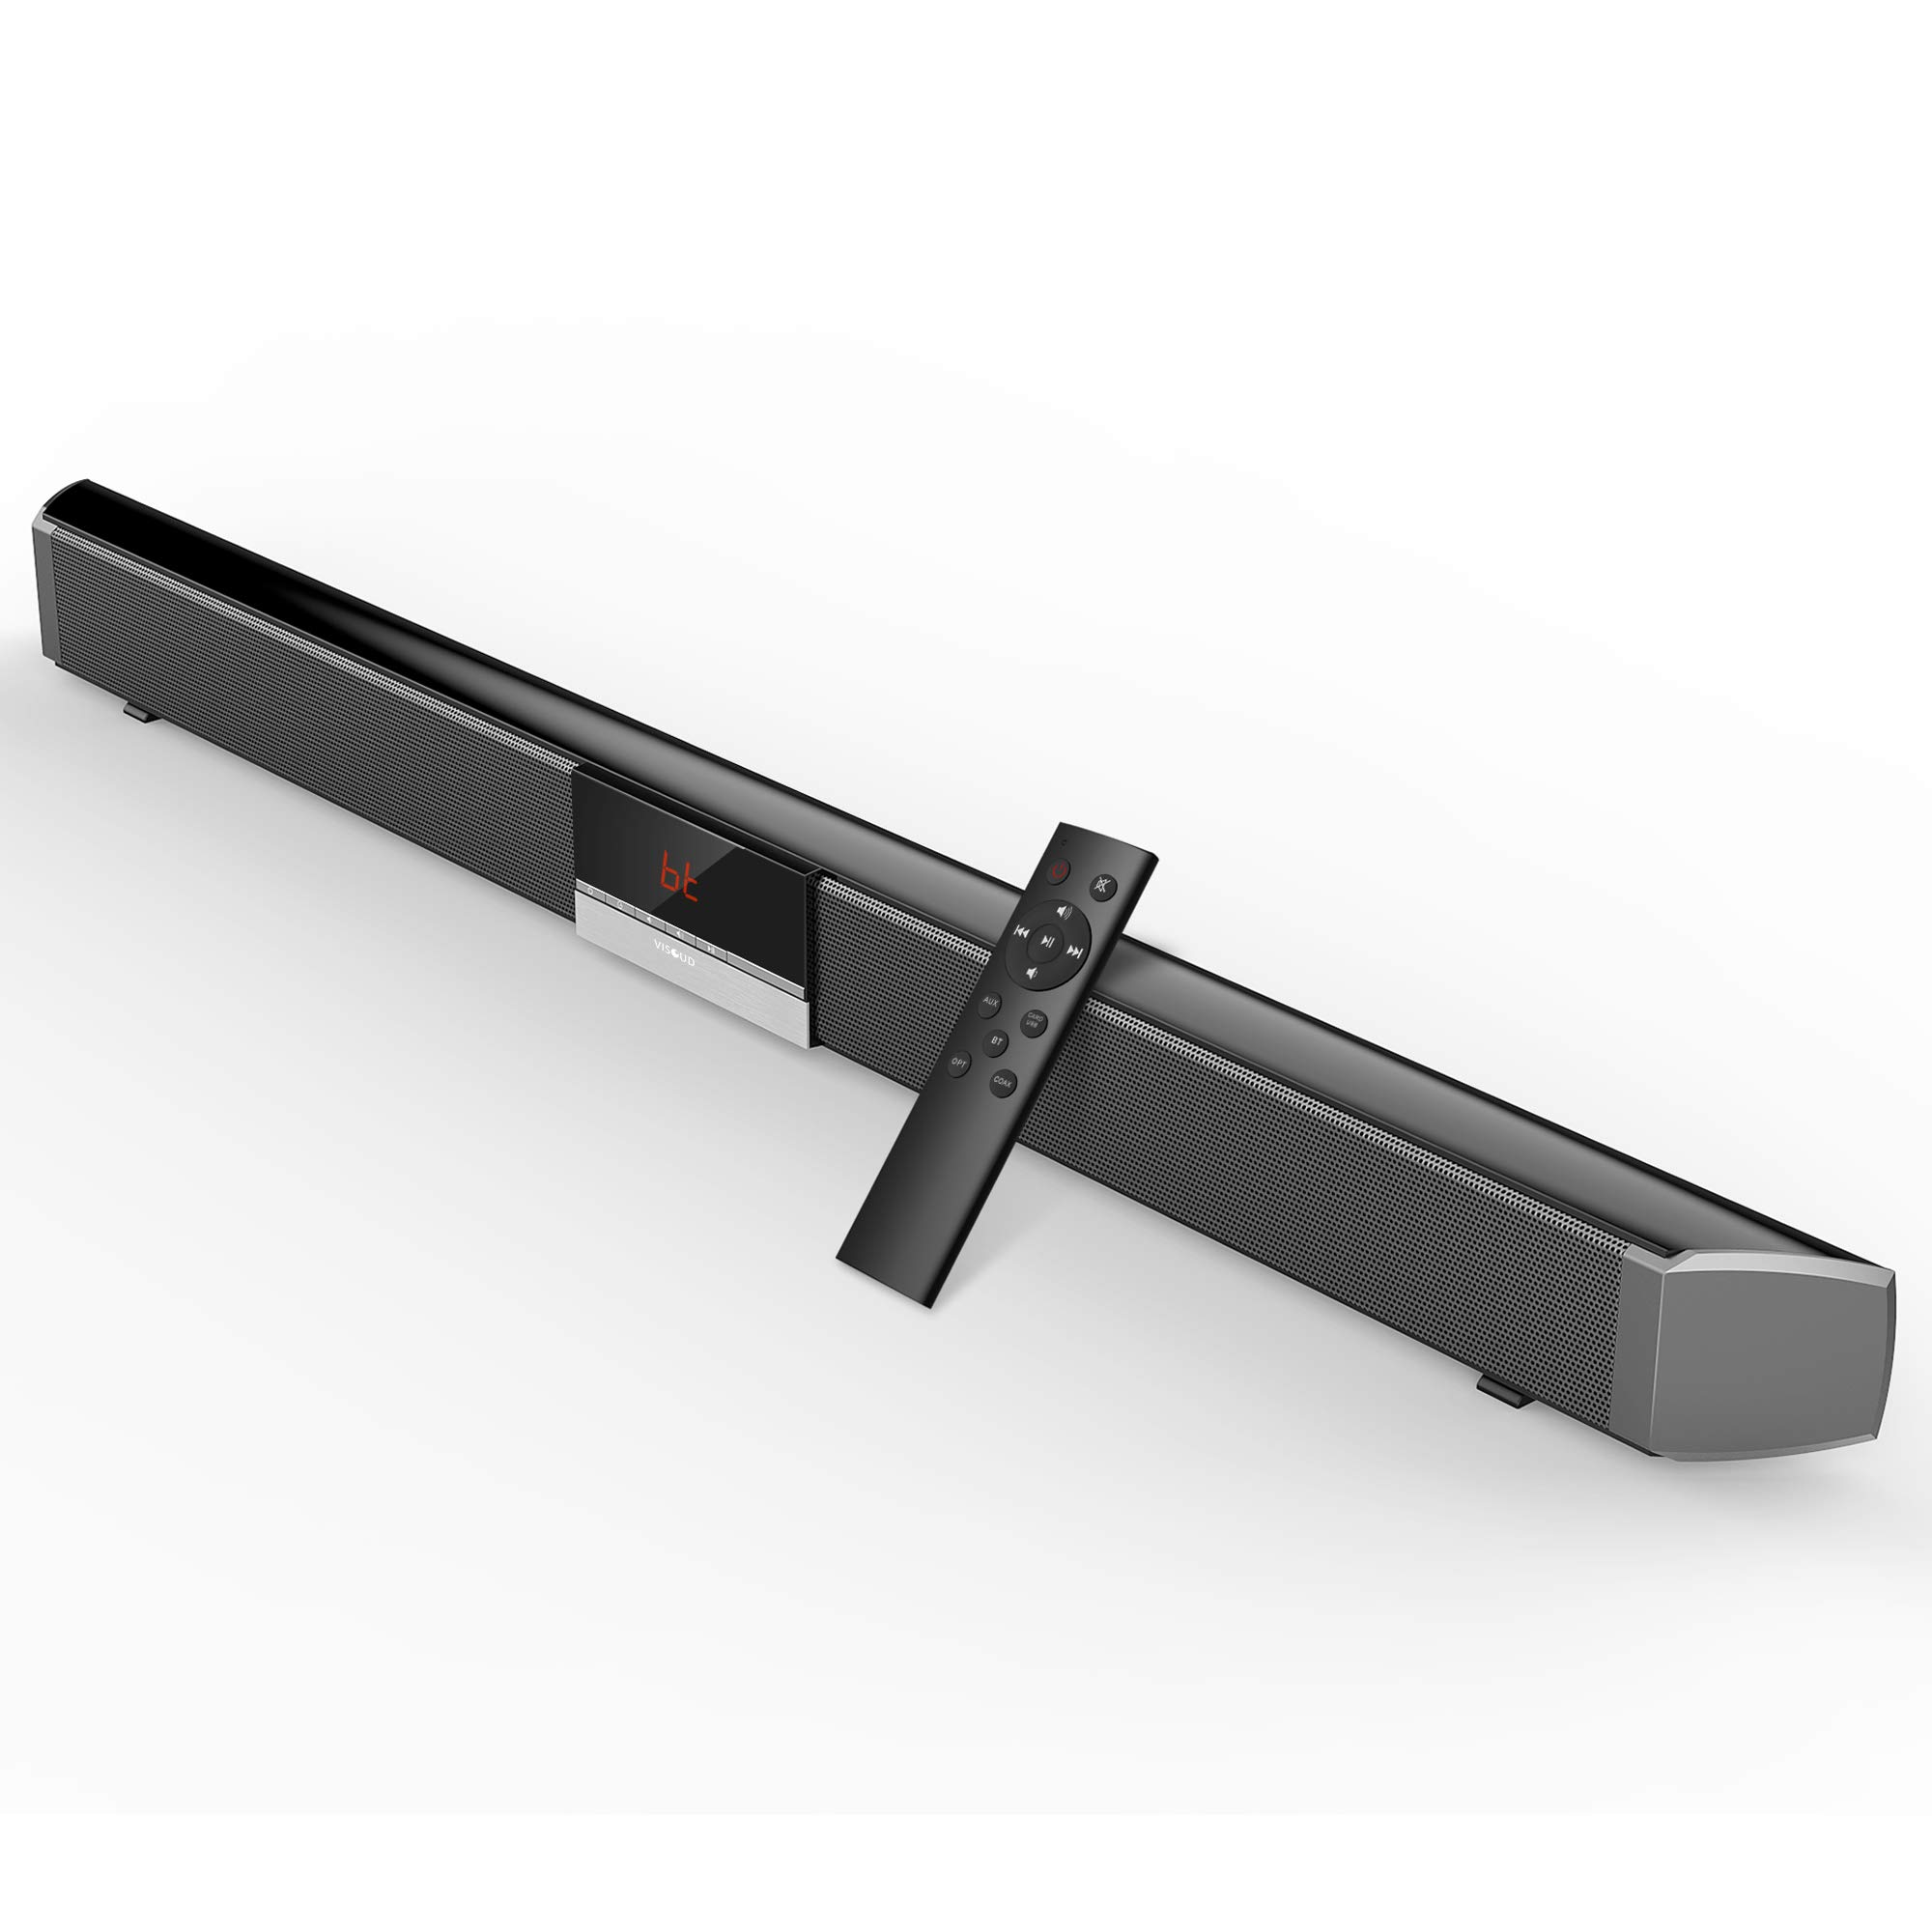 Soundbar, Visoud 34-inches Sound Bar for TV, Wired and Wireless Bluetooth Audio Speakers( Home Theater Surround Sound, Remote Control, Support Optical/AUX/Coaxial/USB/BT Connection)